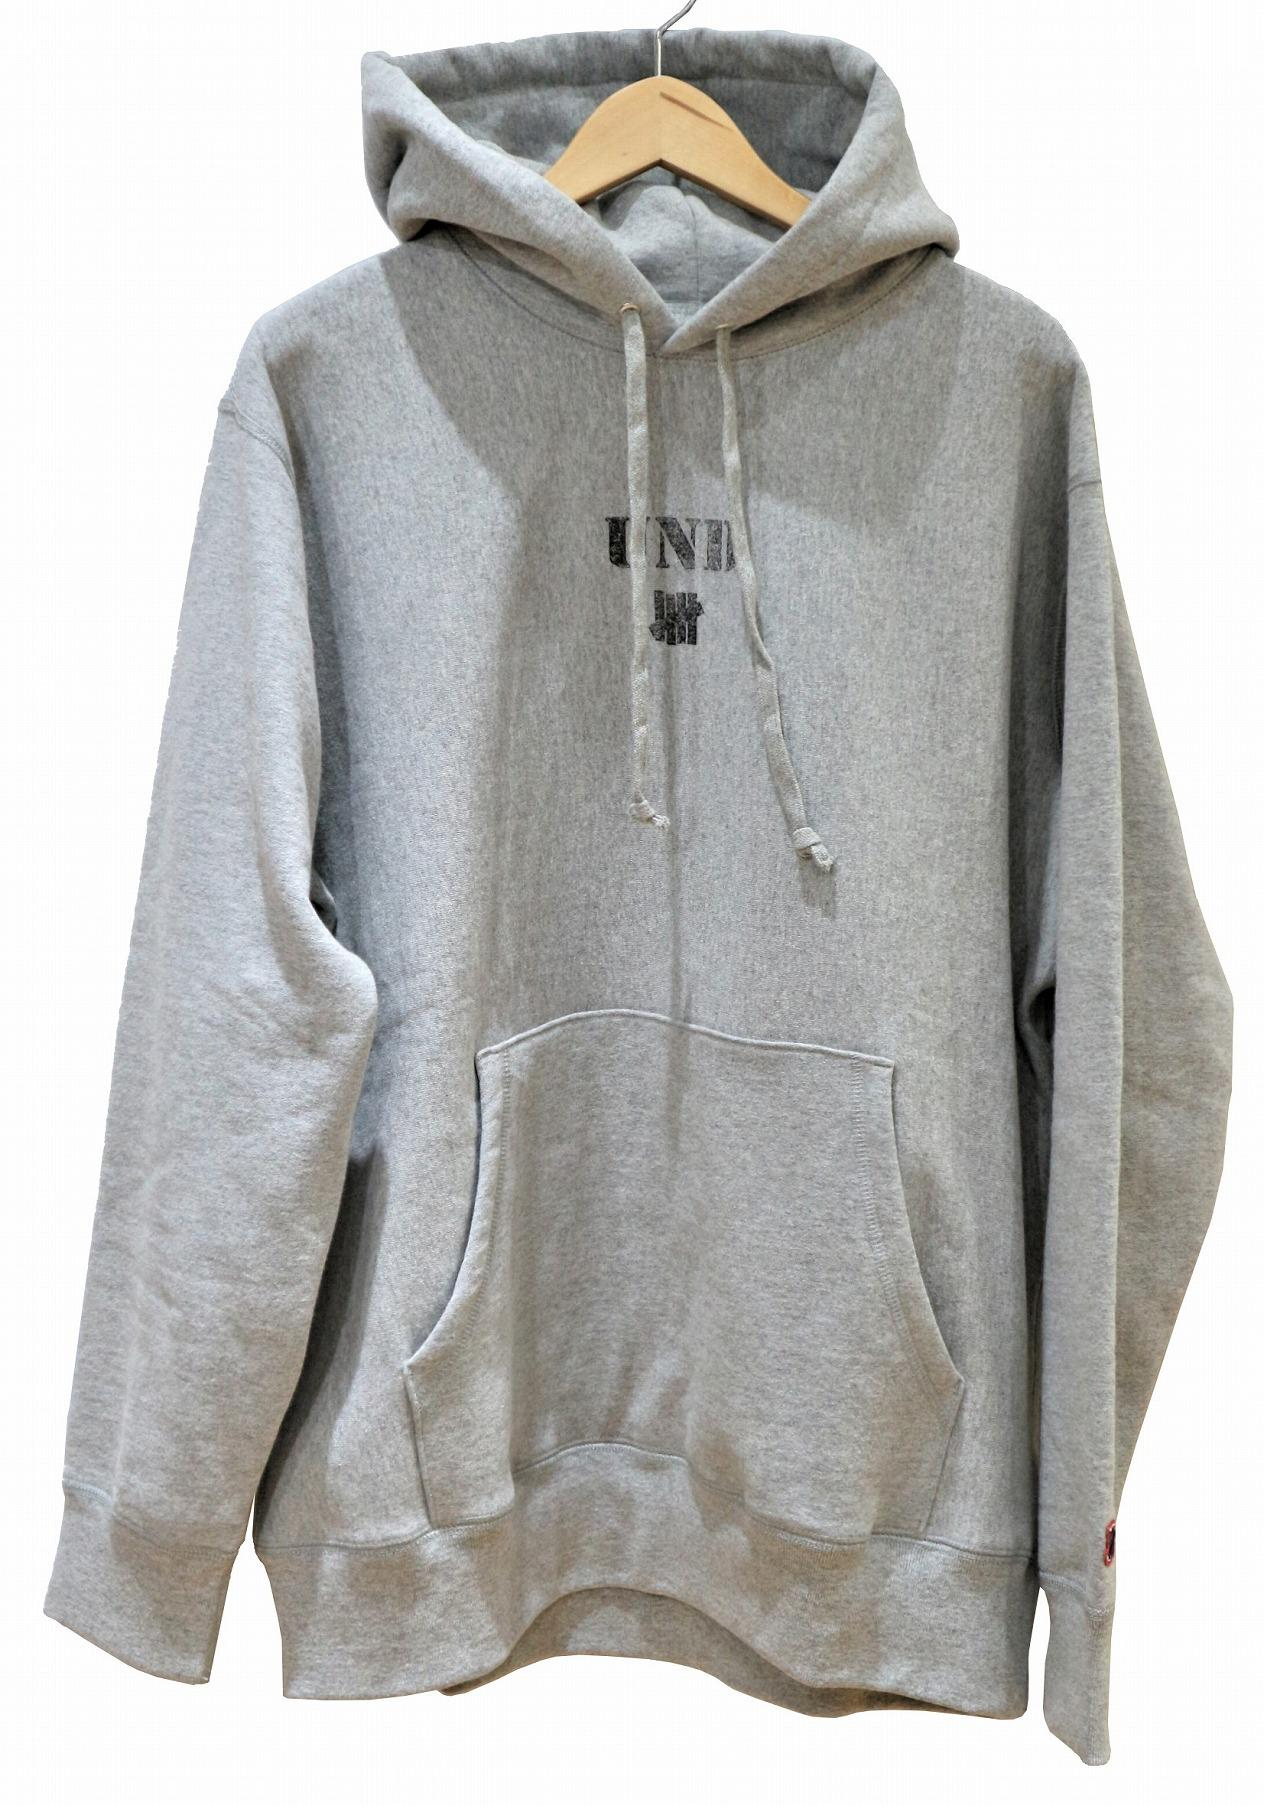 b333c2f6 中古・古着通販】UNDEFEATED (アンディフィーテッド) UND ICON PULLOVER ...